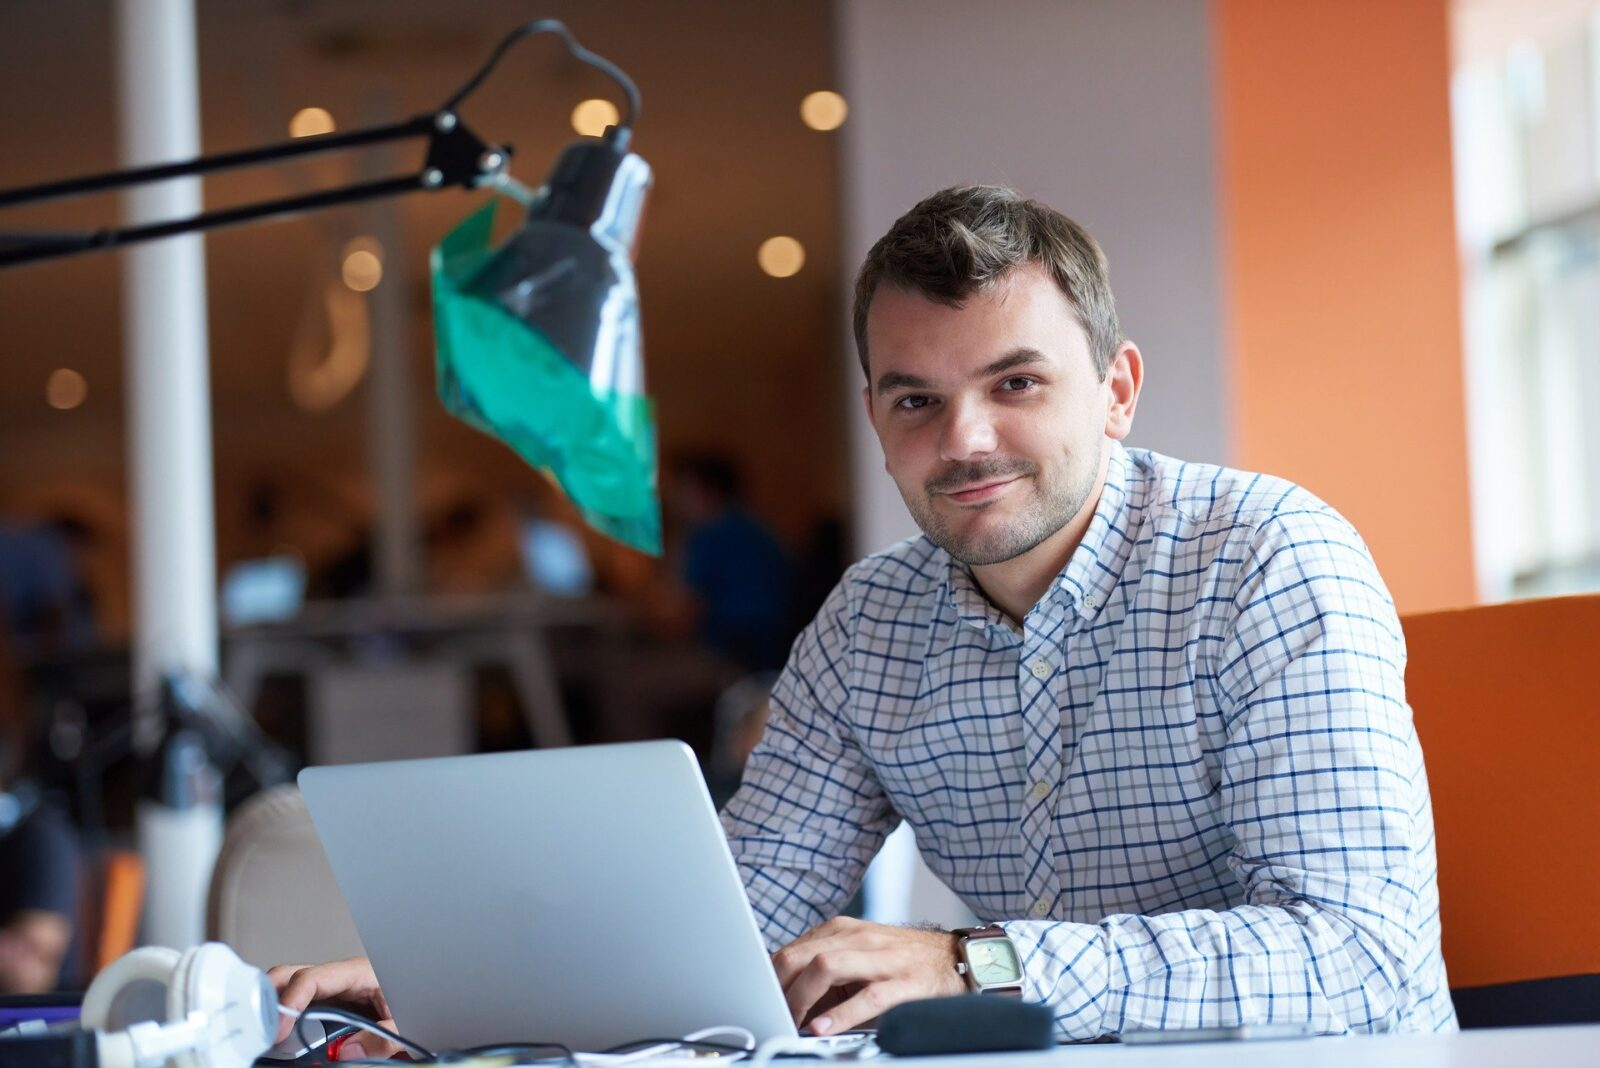 Office Manager sitting at desk in front of laptop smiling